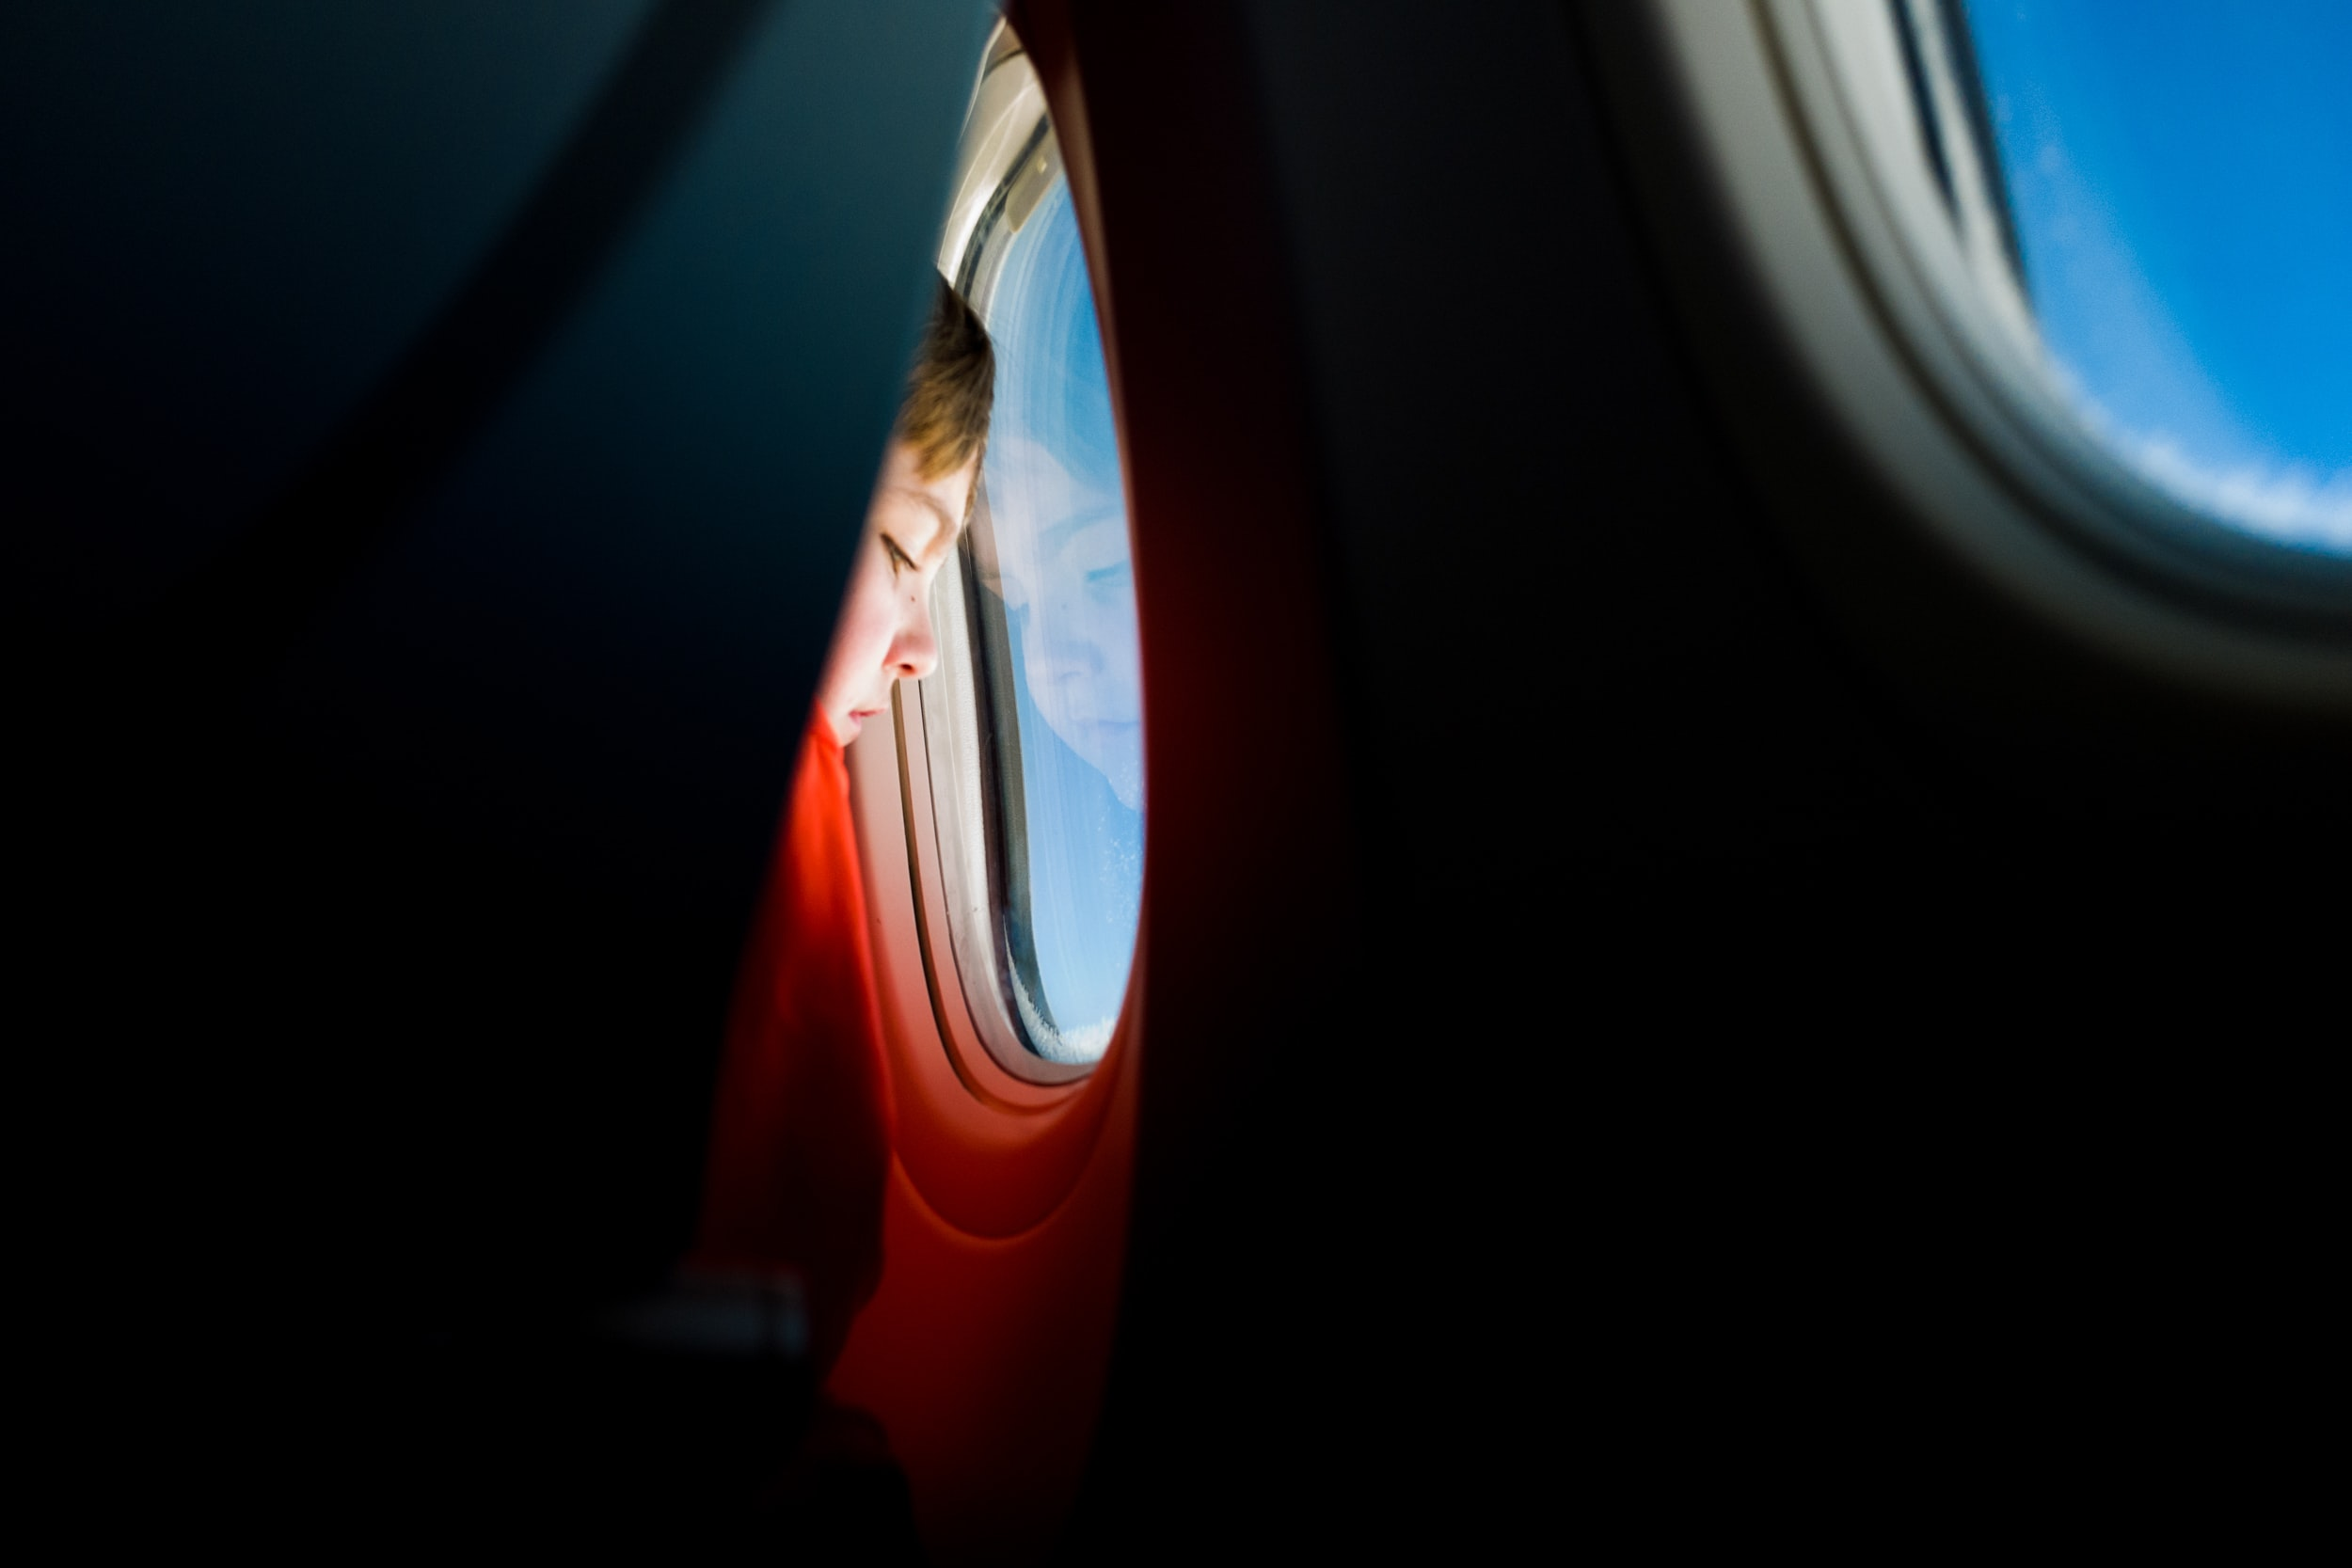 A child presses his forehead against the window of a flying plane